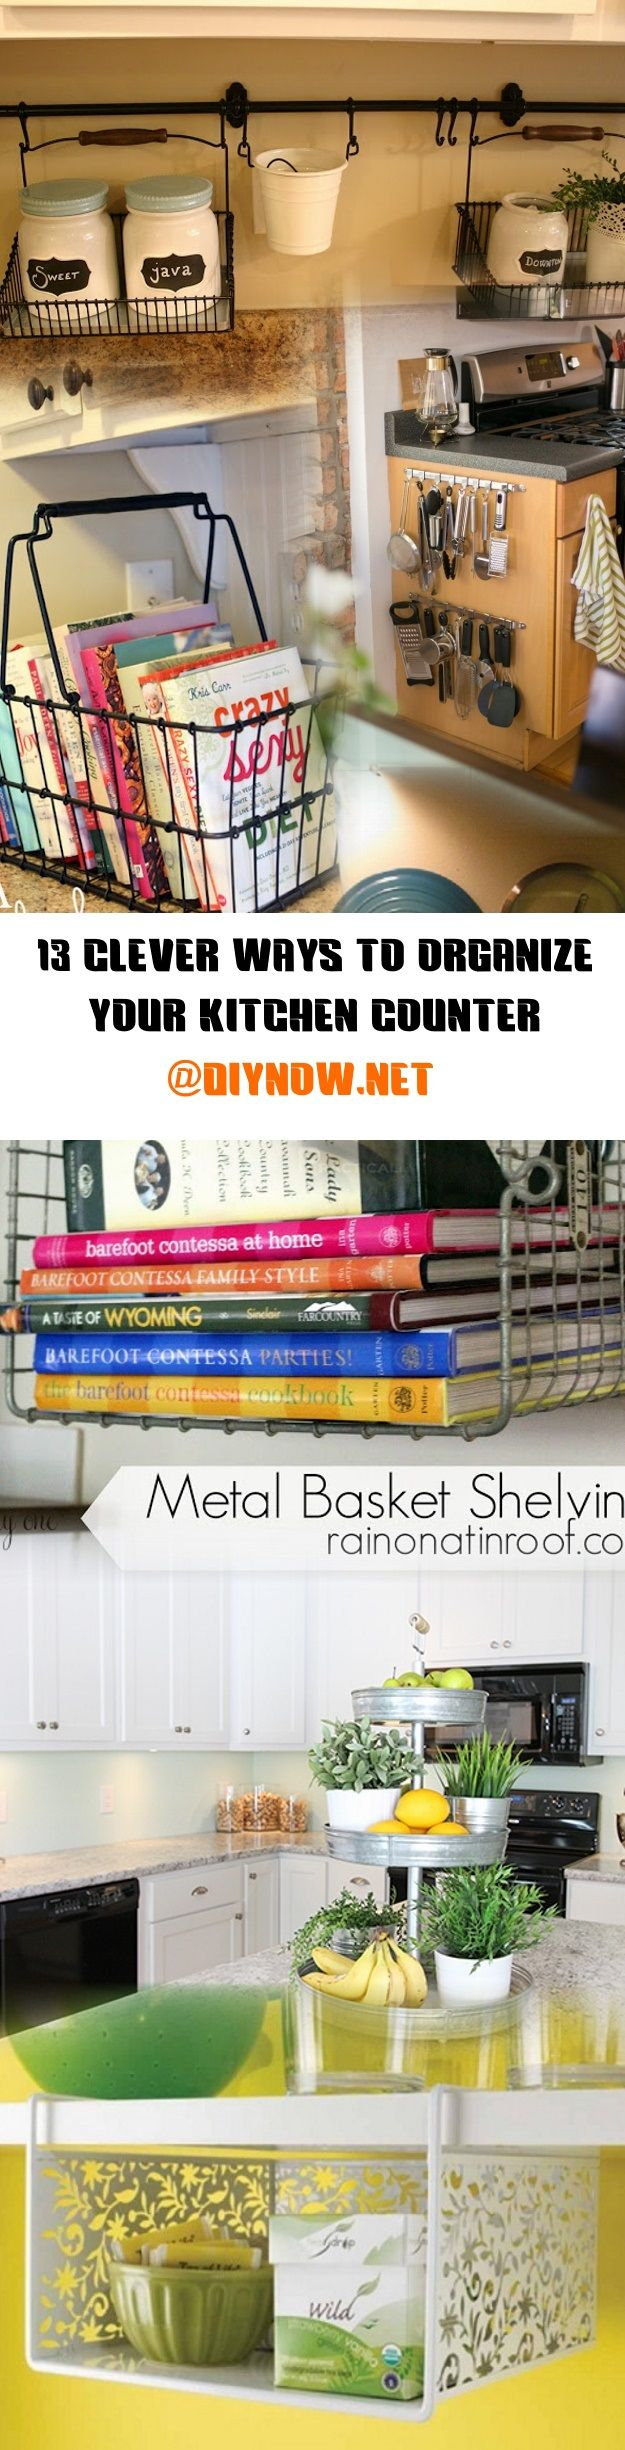 13 Clever Ways to Organize Your Kitchen Counter